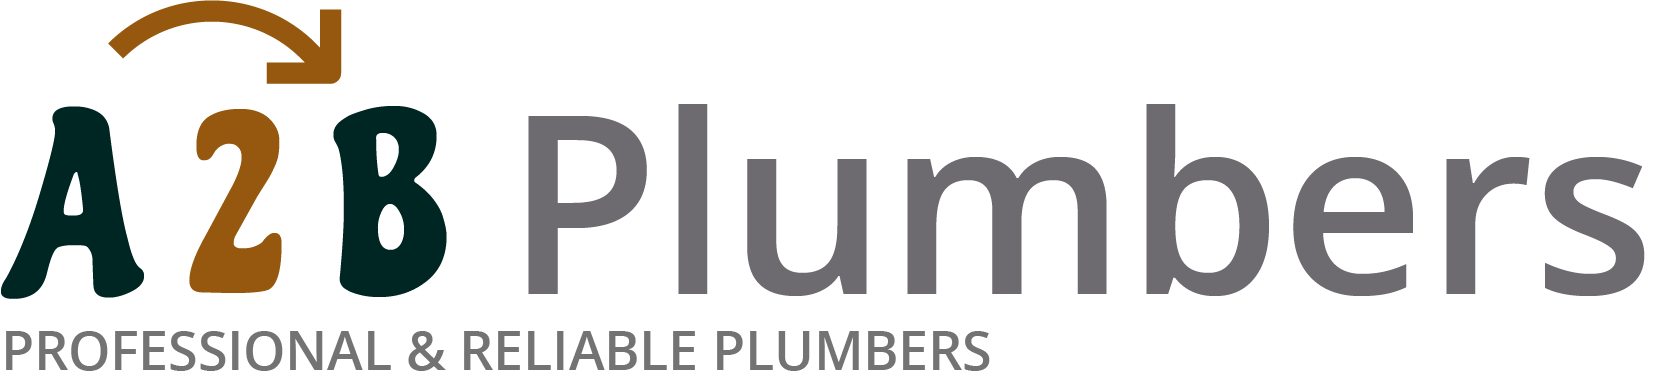 If you need a boiler installed, a radiator repaired or a leaking tap fixed, call us now - we provide services for properties in Tilbury and the local area.